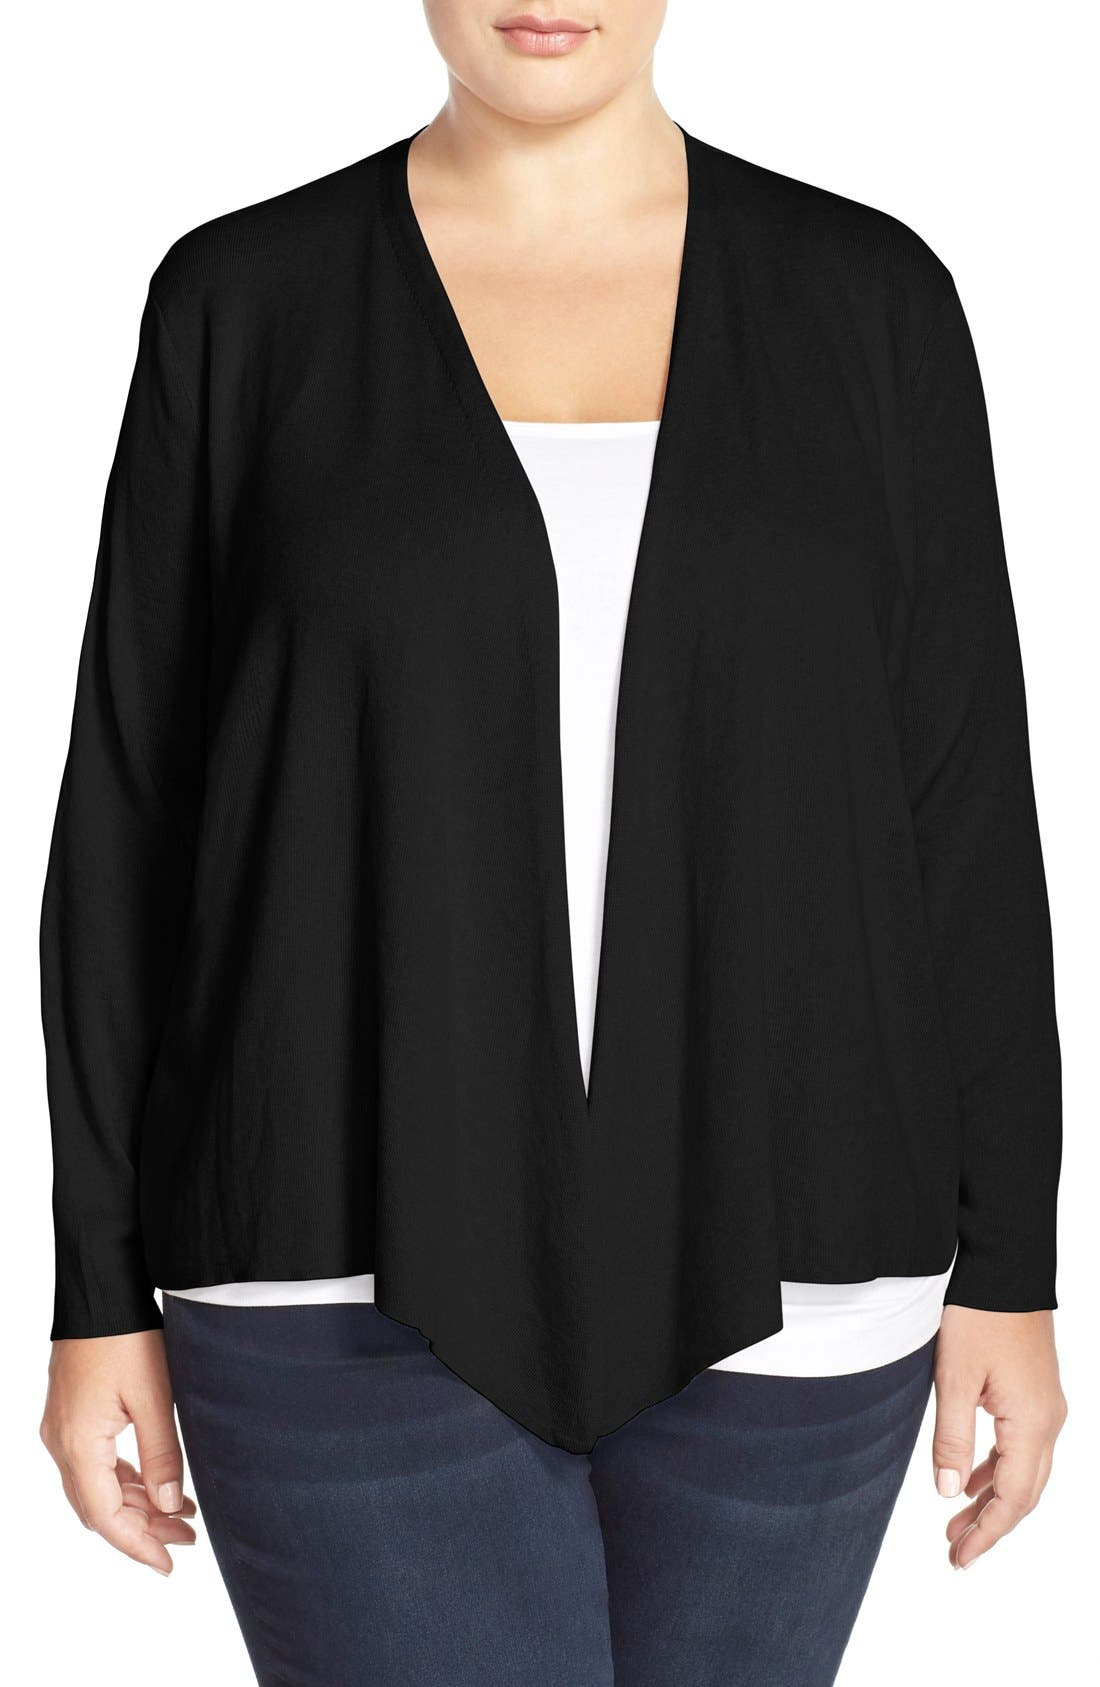 4-Way Convertible Cardigan,                         Main,                         color, BLACK ONYX